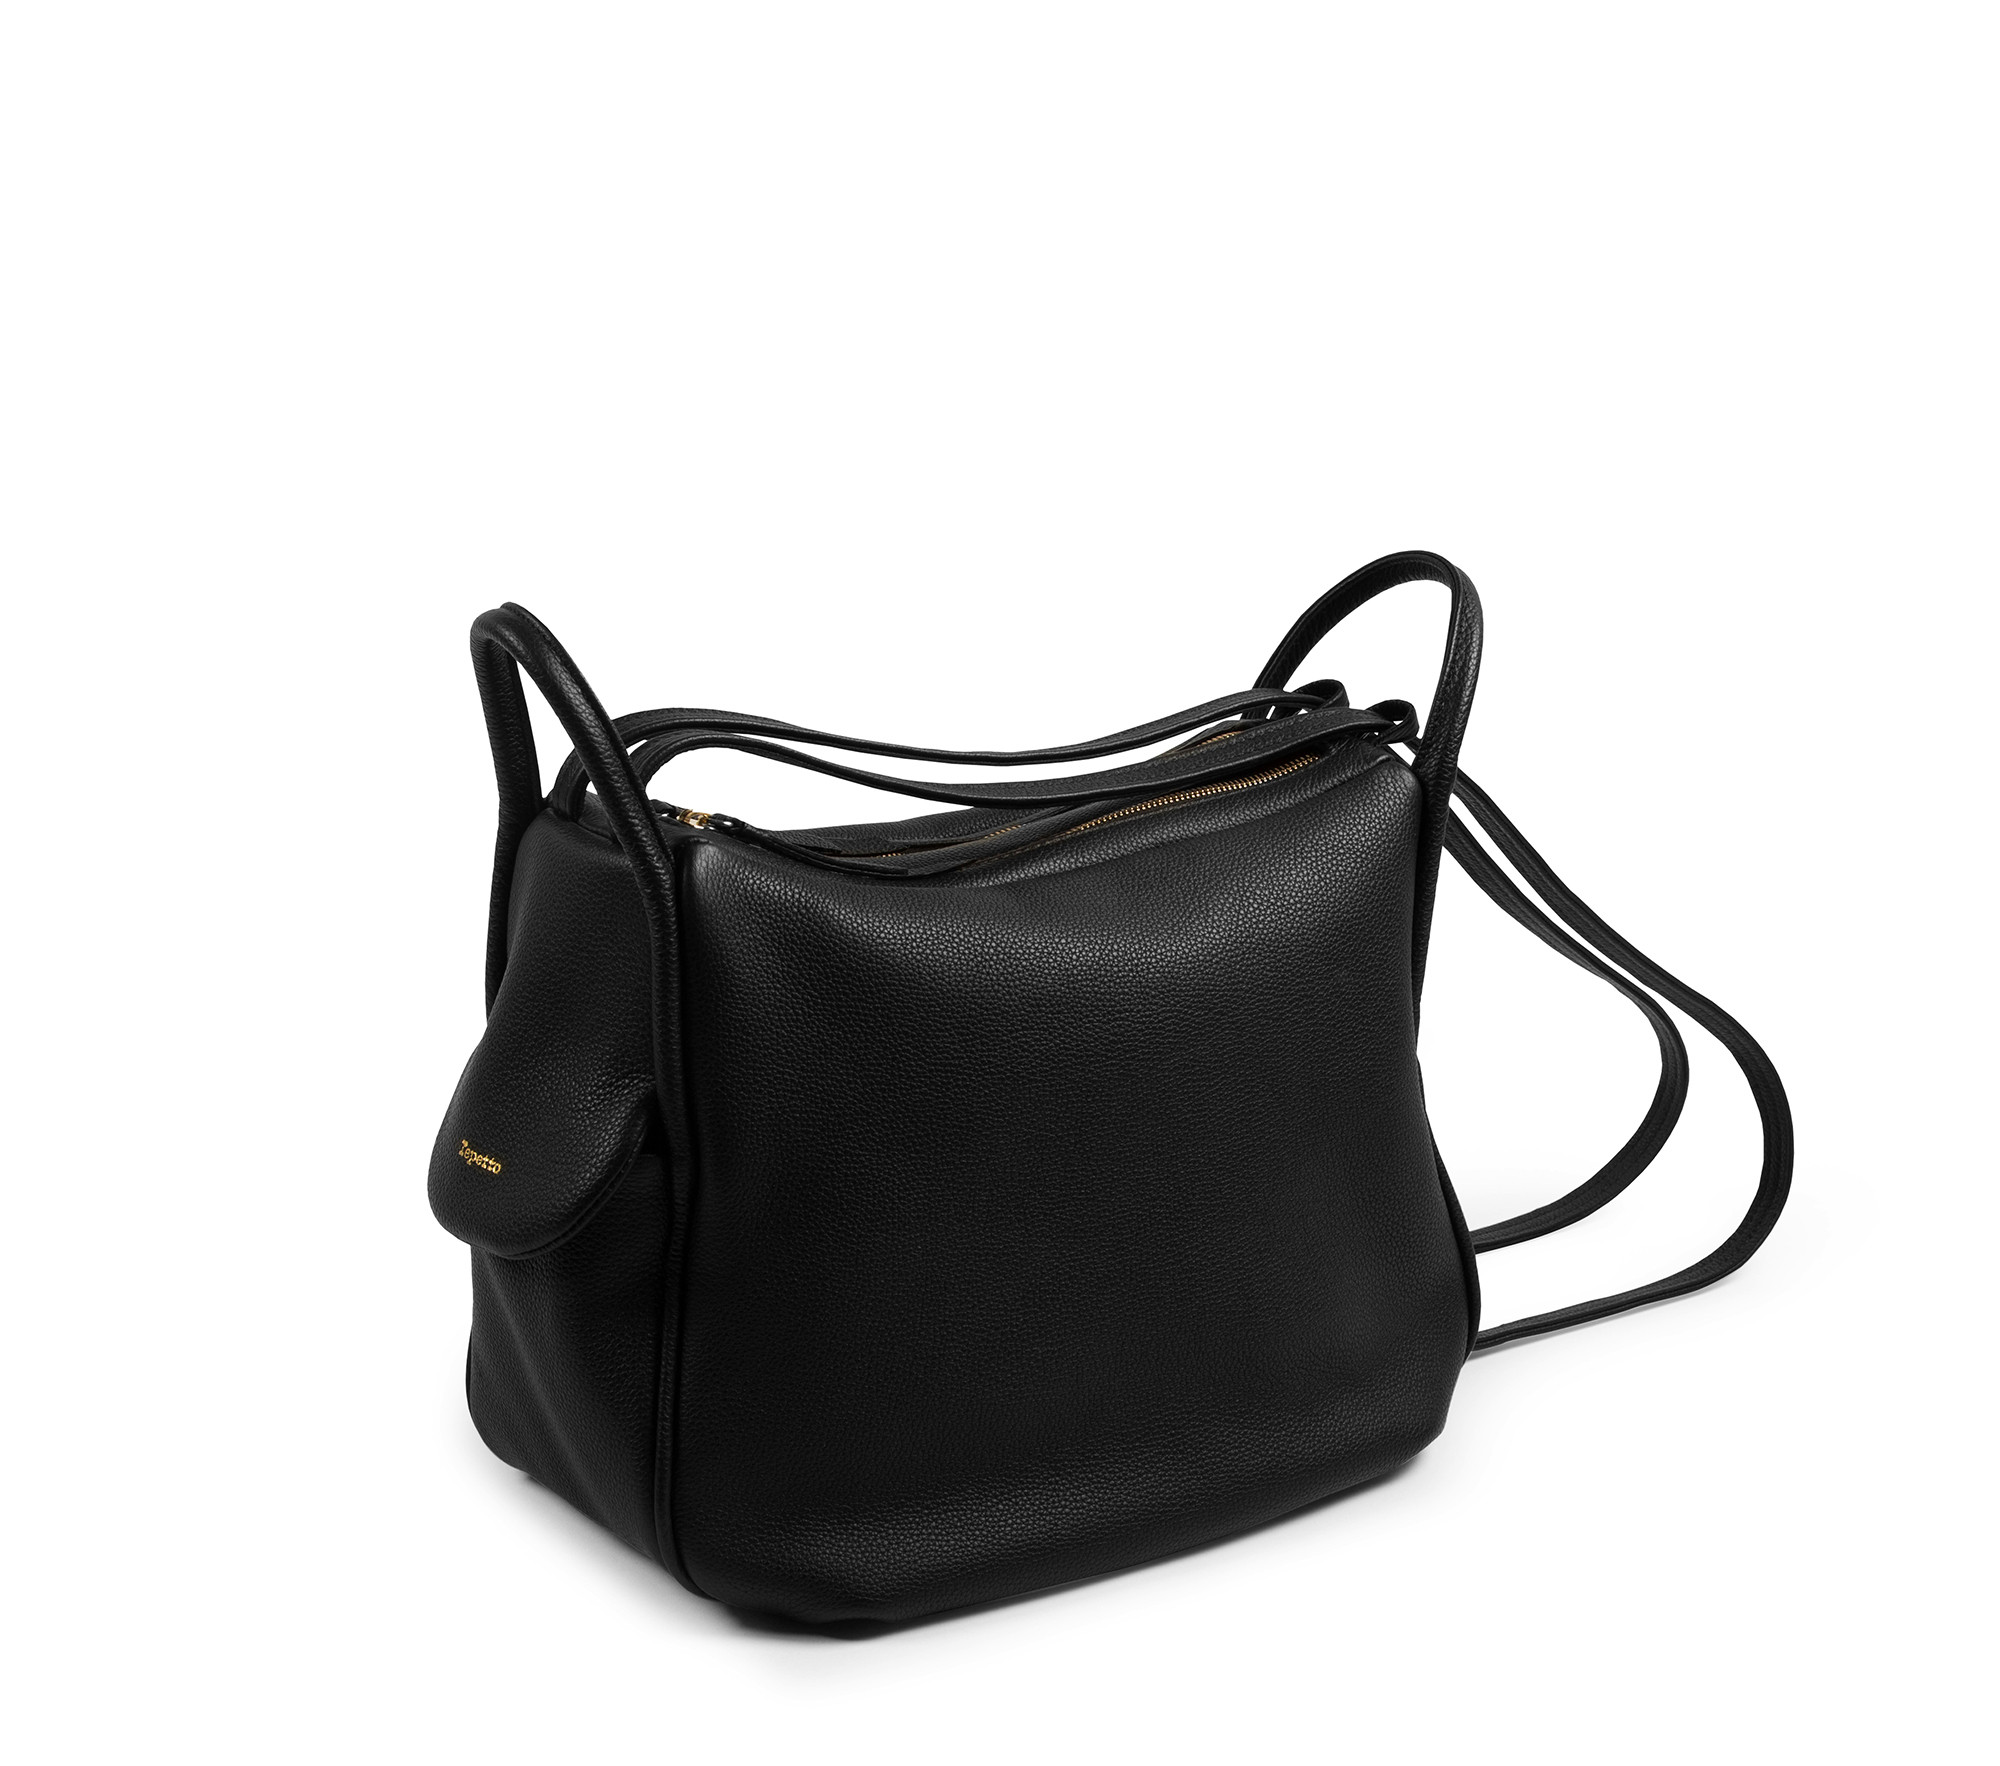 Étoile multi worn bag